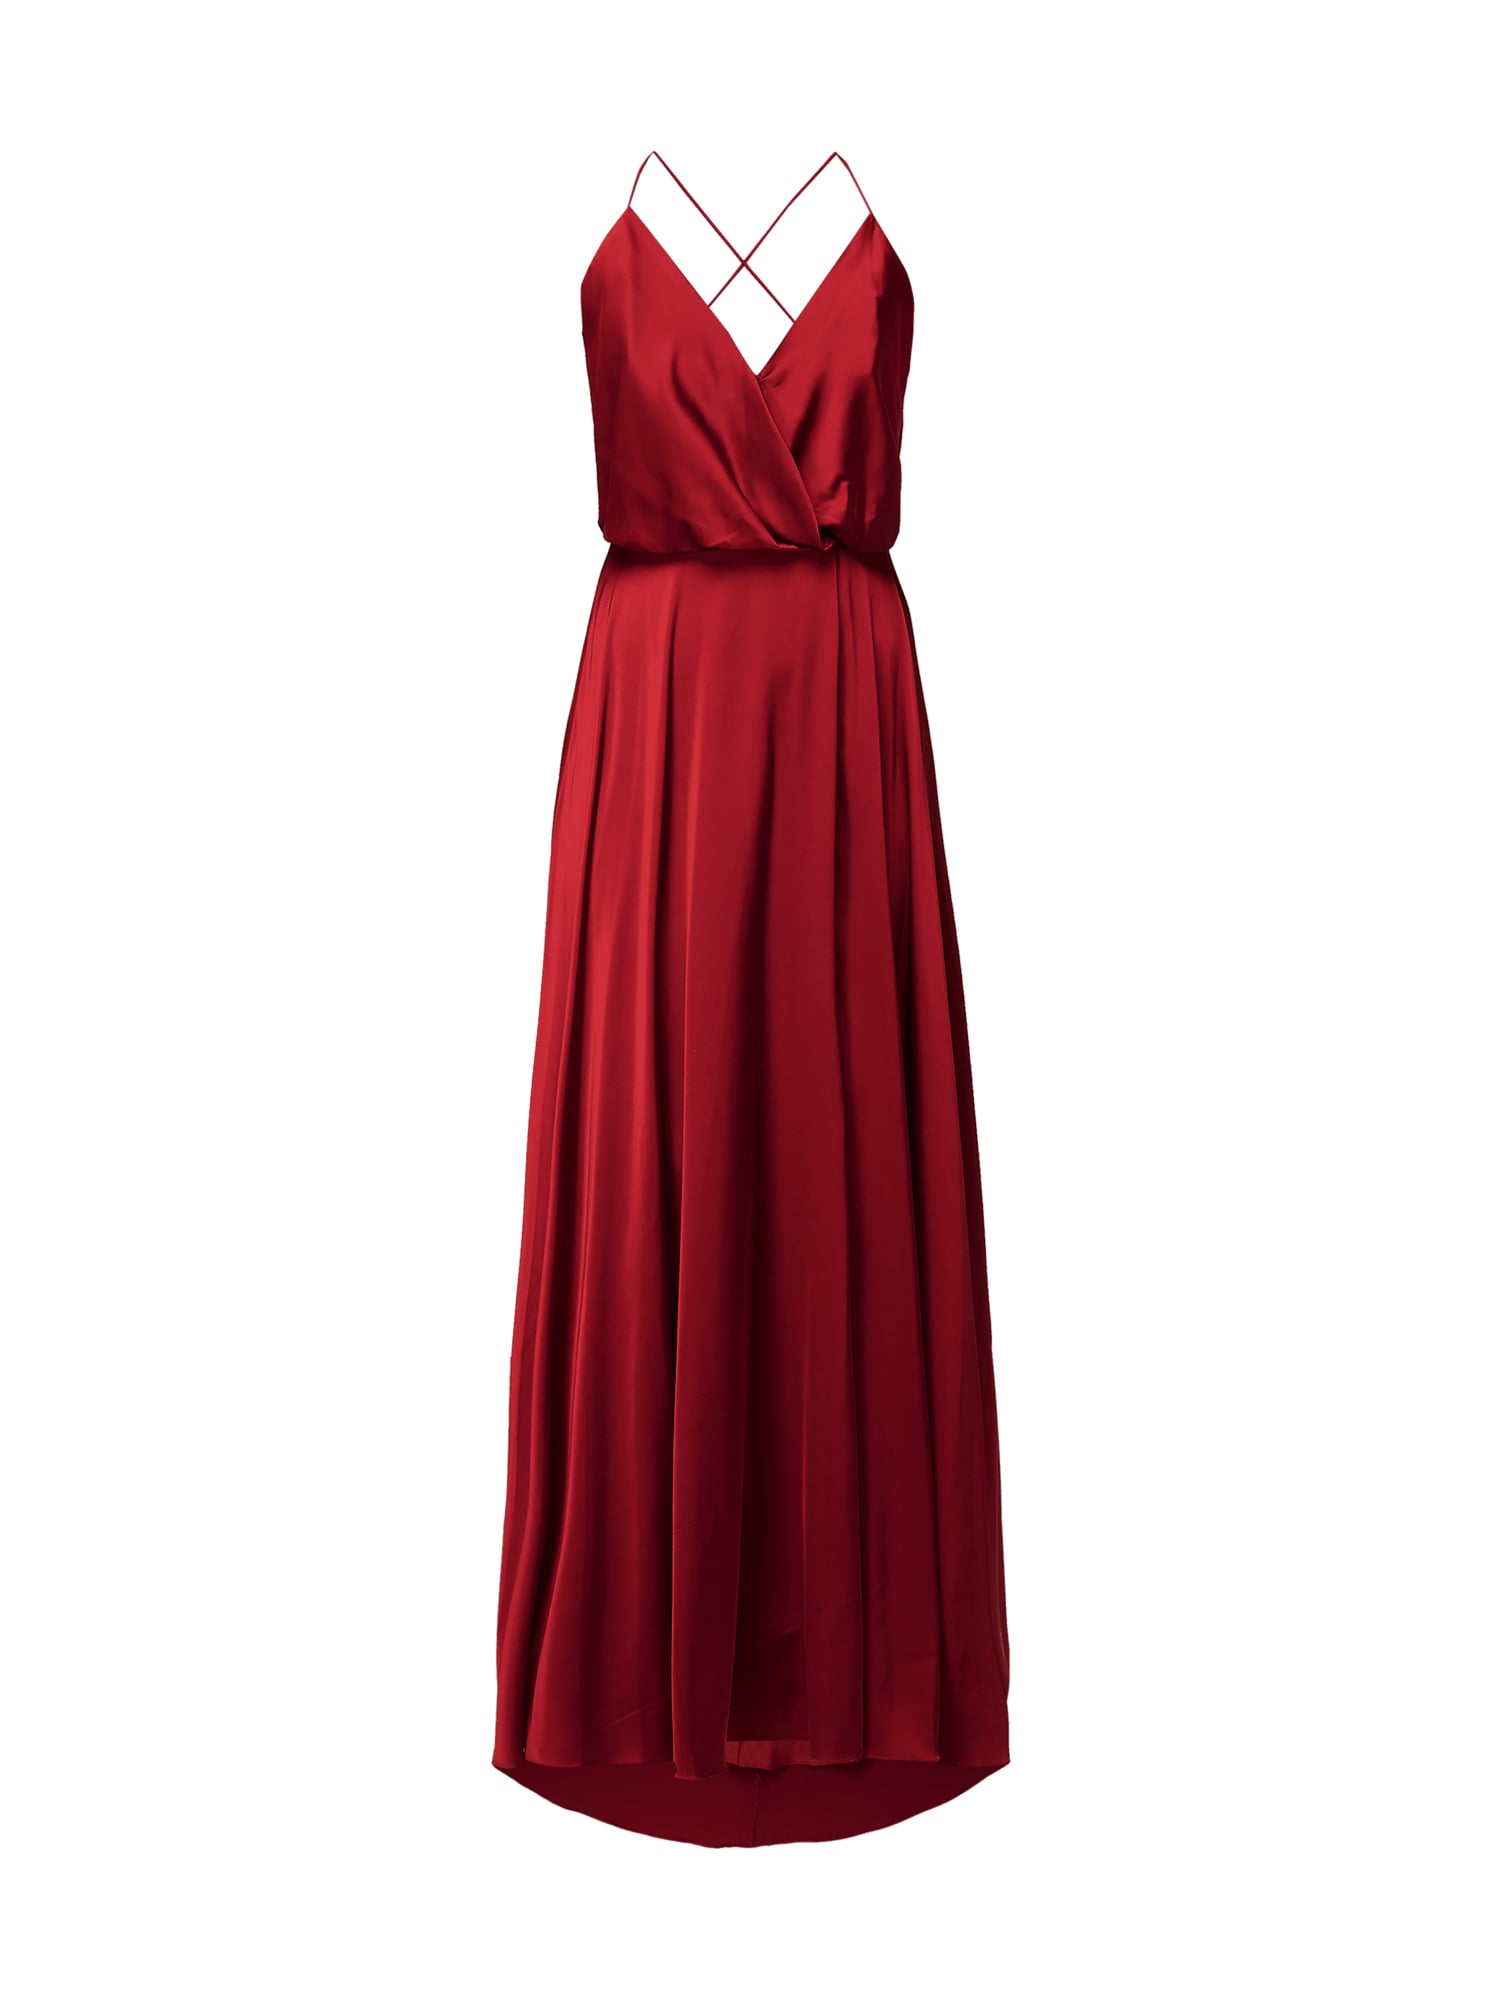 UNIQUE Abendkleid aus Satin in Rot online kaufen (11) ▷ P&C Online Shop